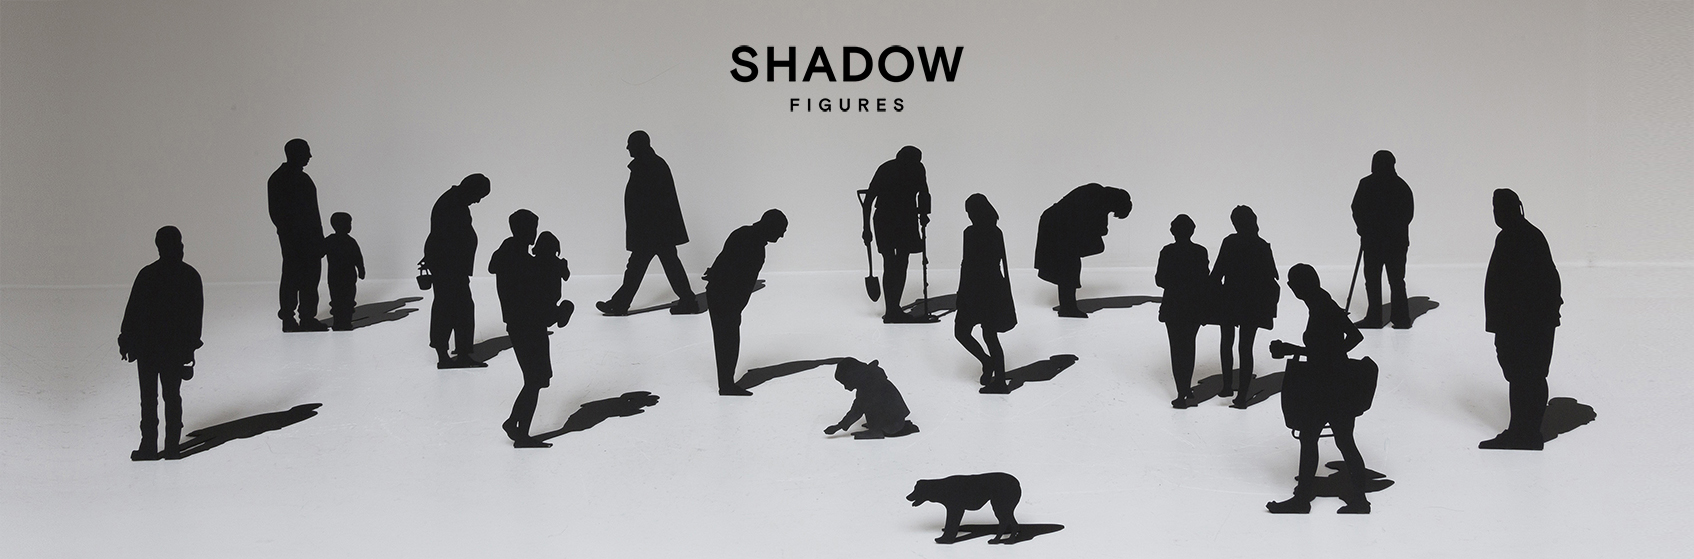 shadow figures